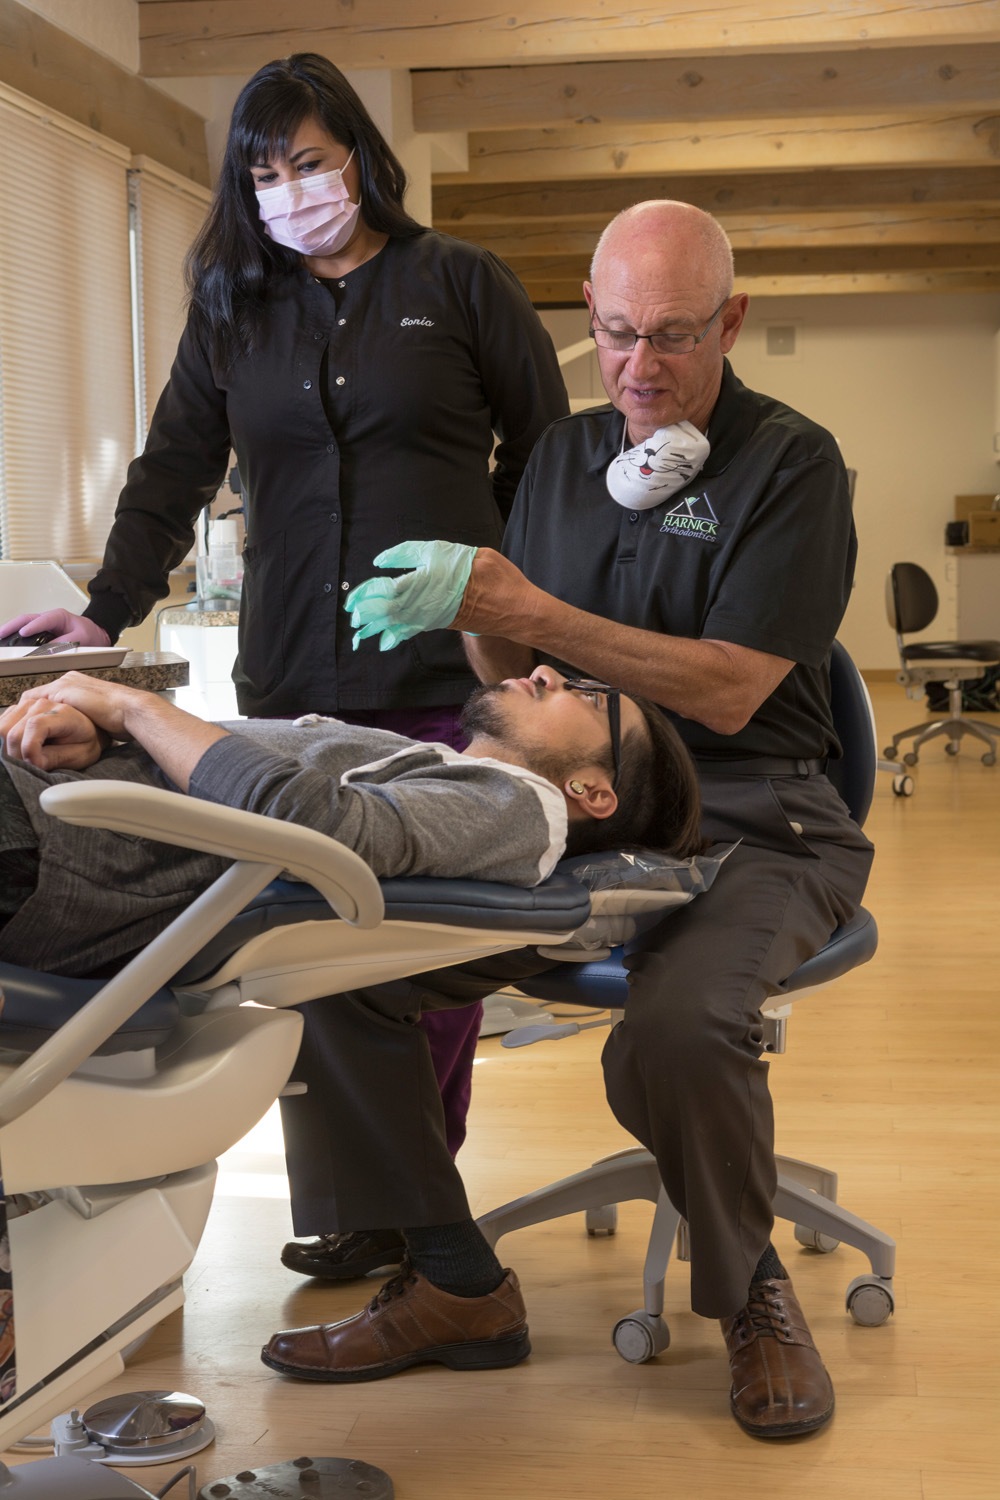 Dental assistant Sonia Martinez works with Dr. David Harnick as he examines a patient at Harnick Orthodontics in Albuquerque, New Mexico.